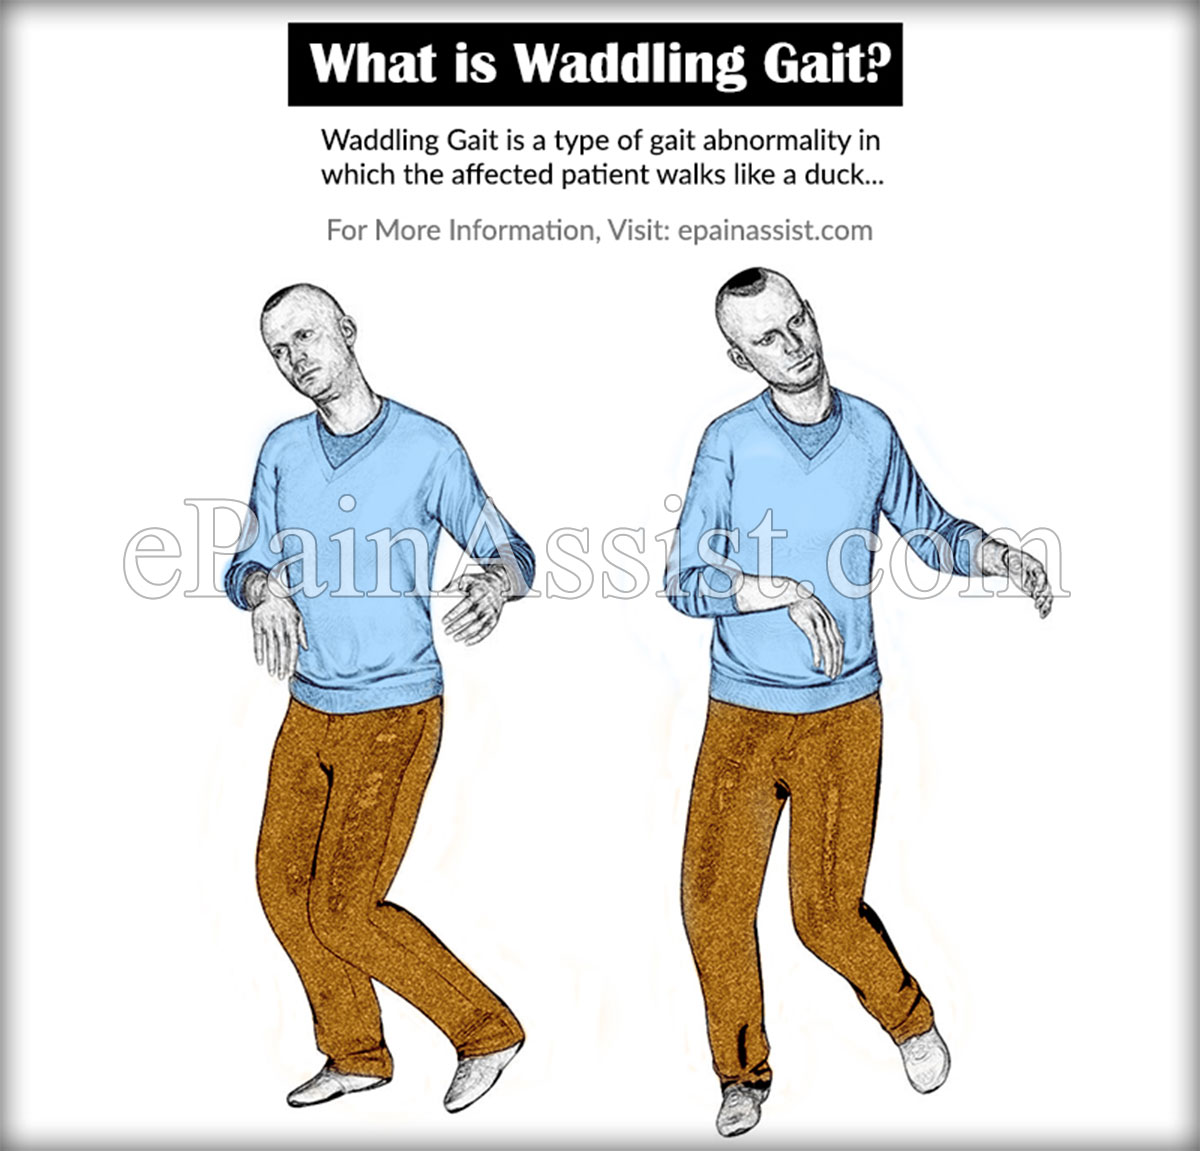 What is Waddling Gait?